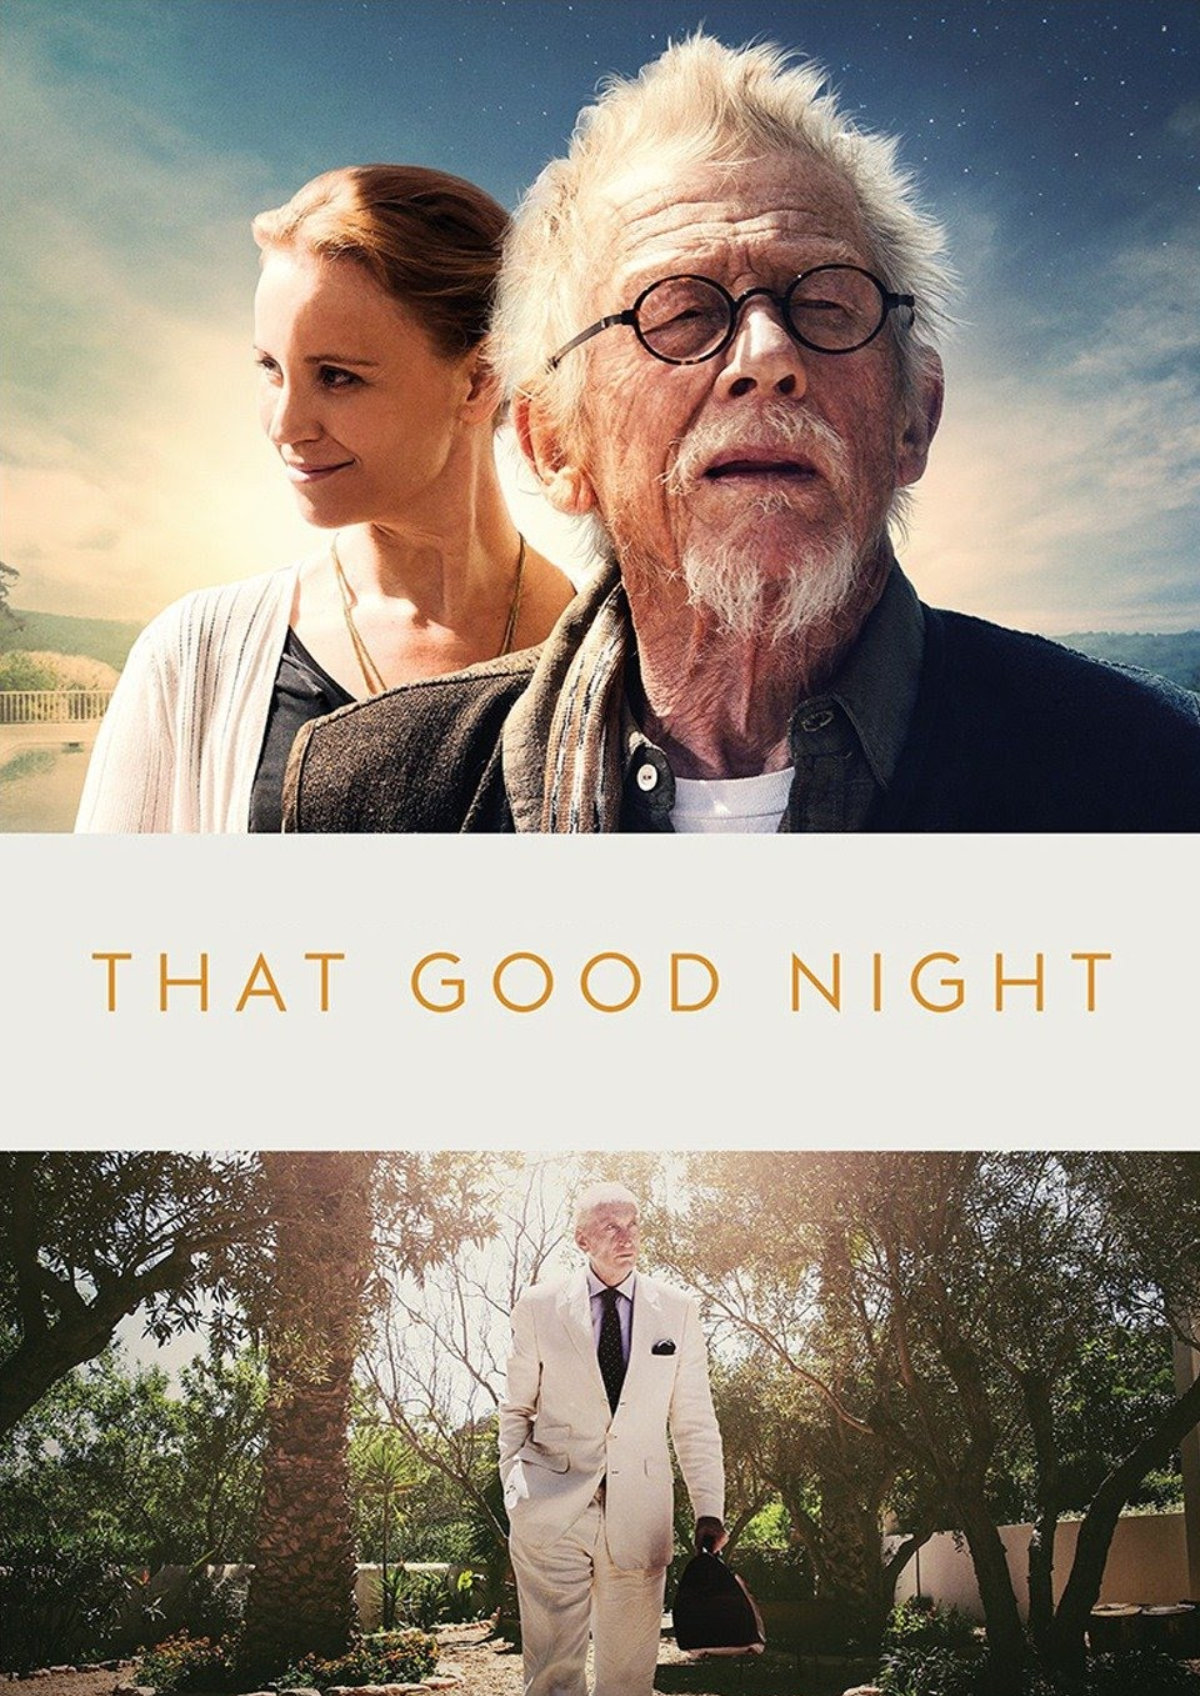 'That Good Night' movie poster